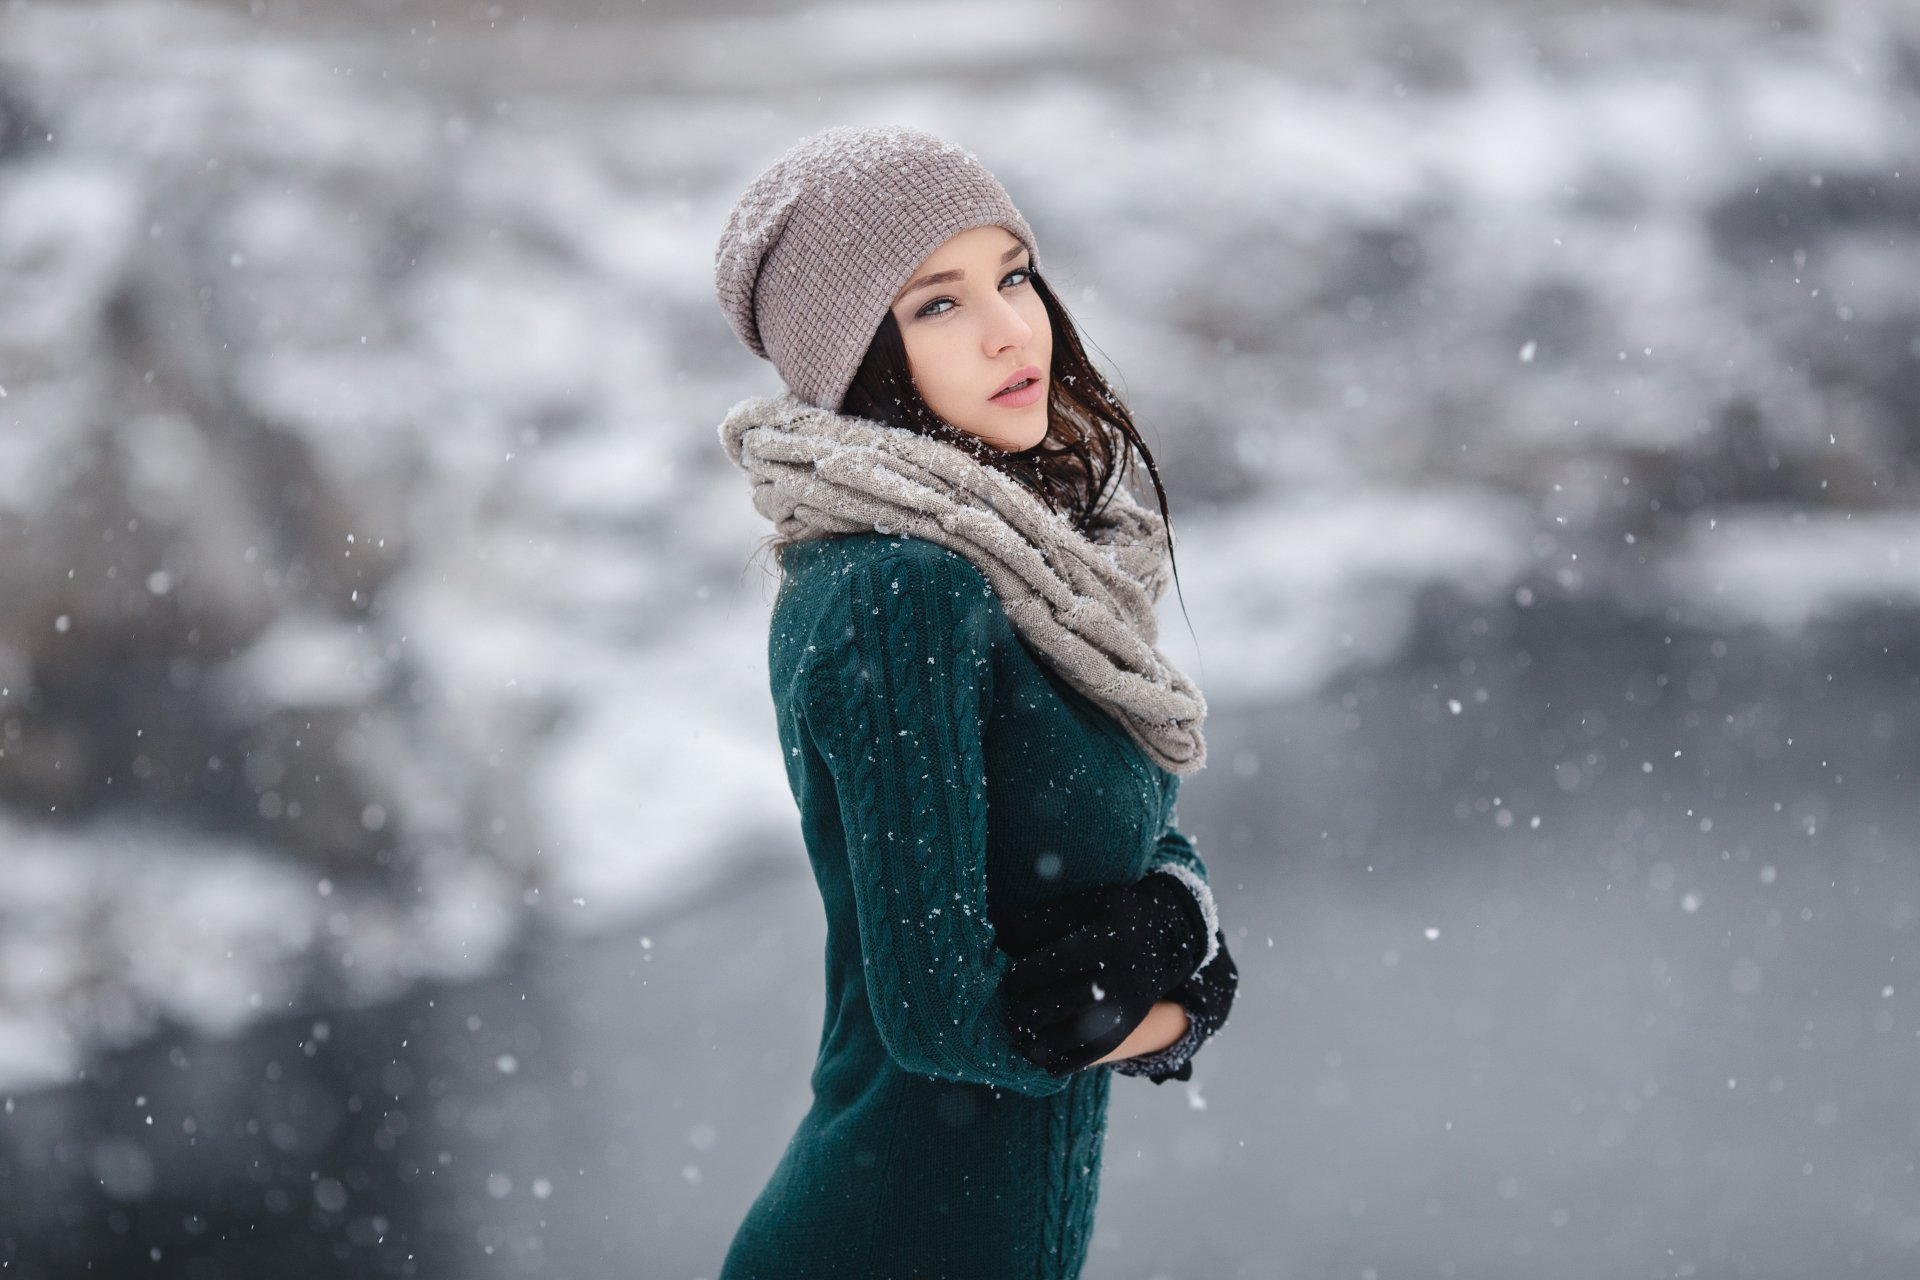 Women - Angelina Petrova  Woman Model Bokeh Winter Snowfall Hat Scarf Brunette Wallpaper